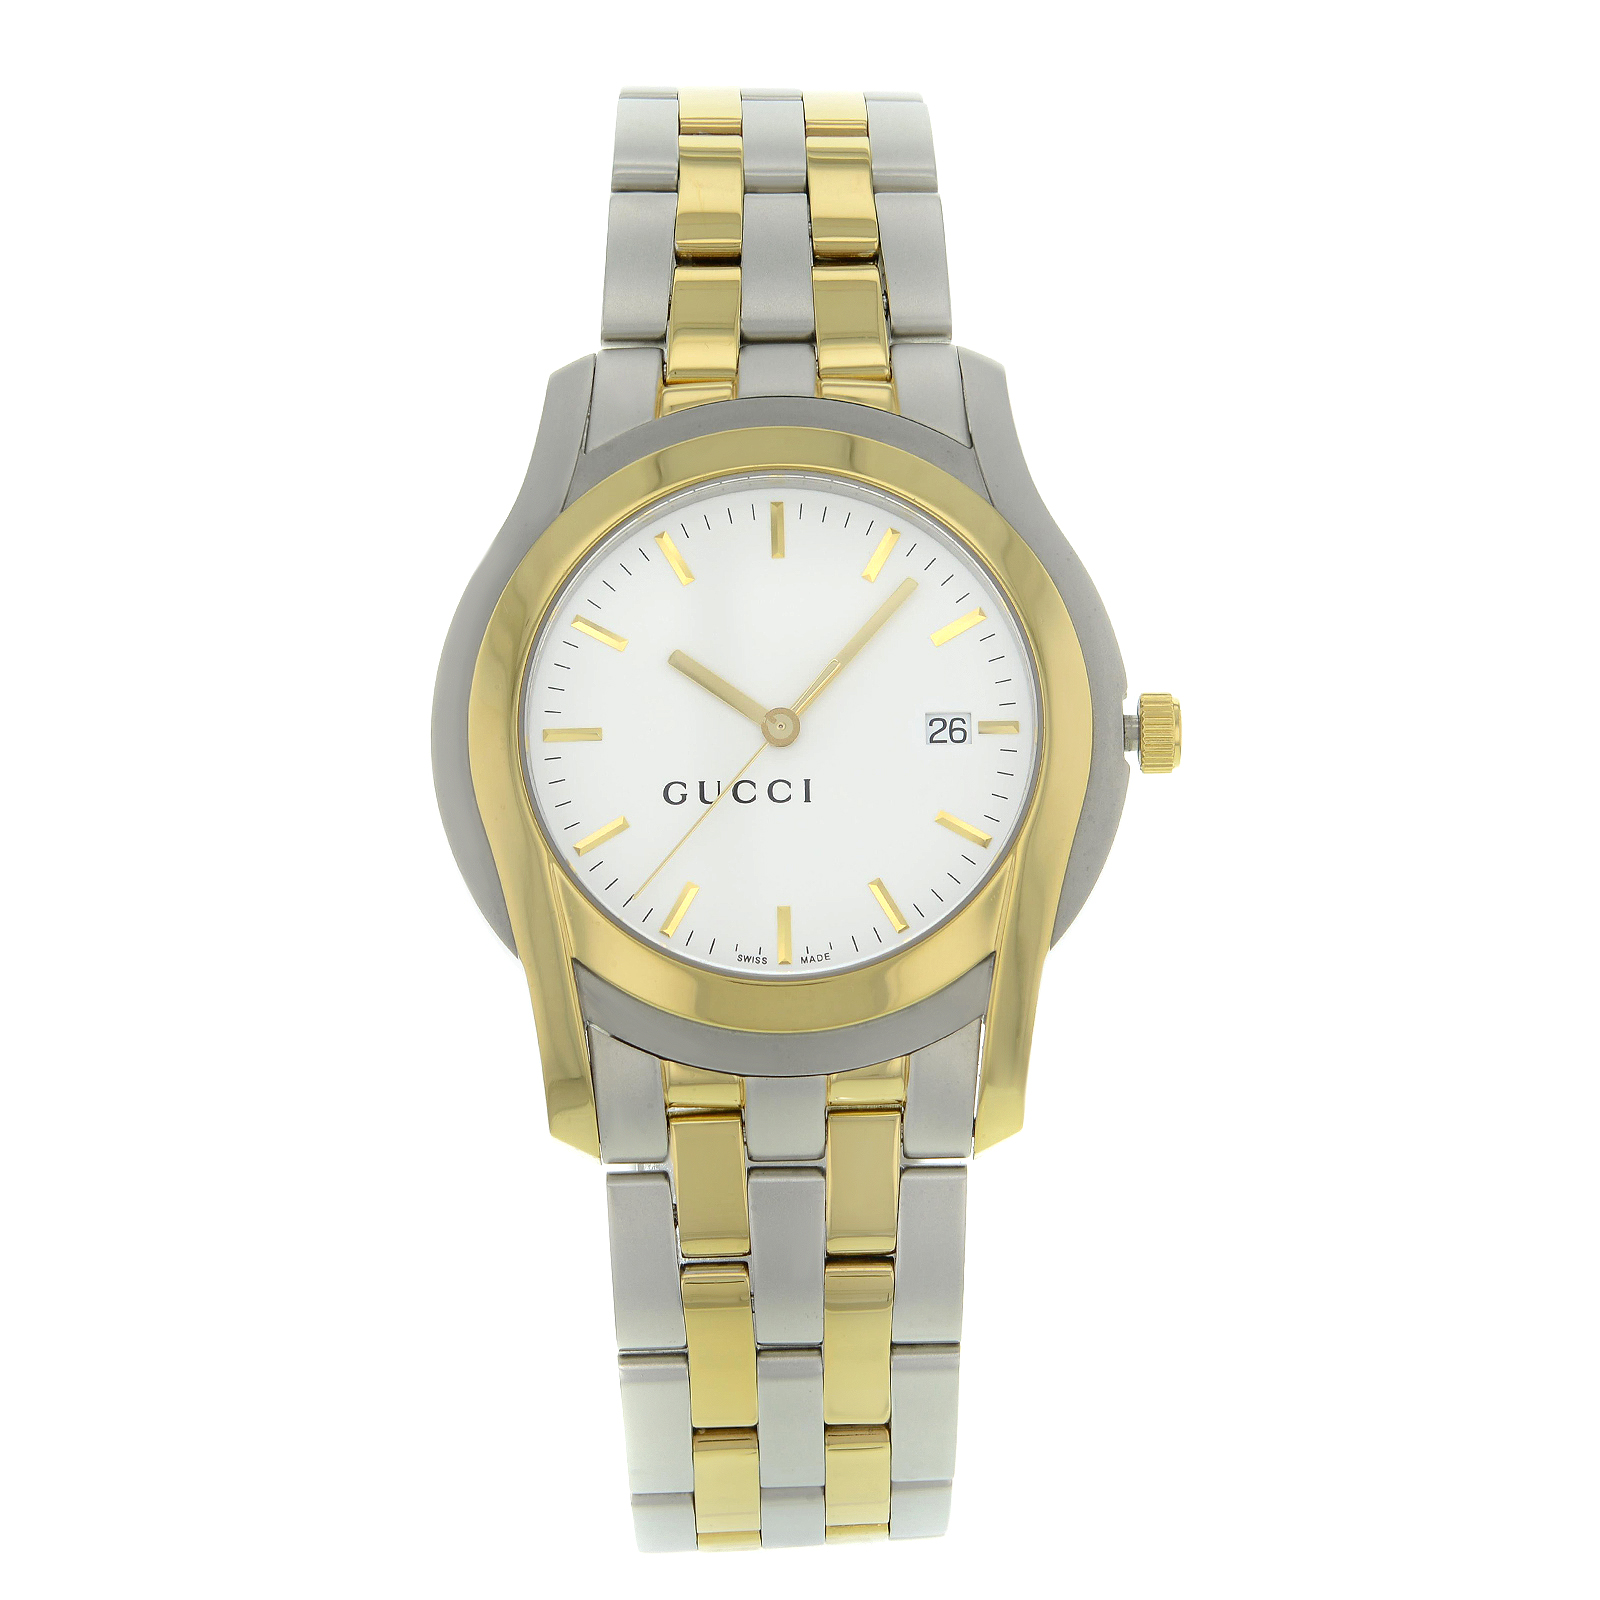 048f43f05d5 Gucci 5500 YA055216 Stainless Steel Gold Plated Quartz Men s Watch